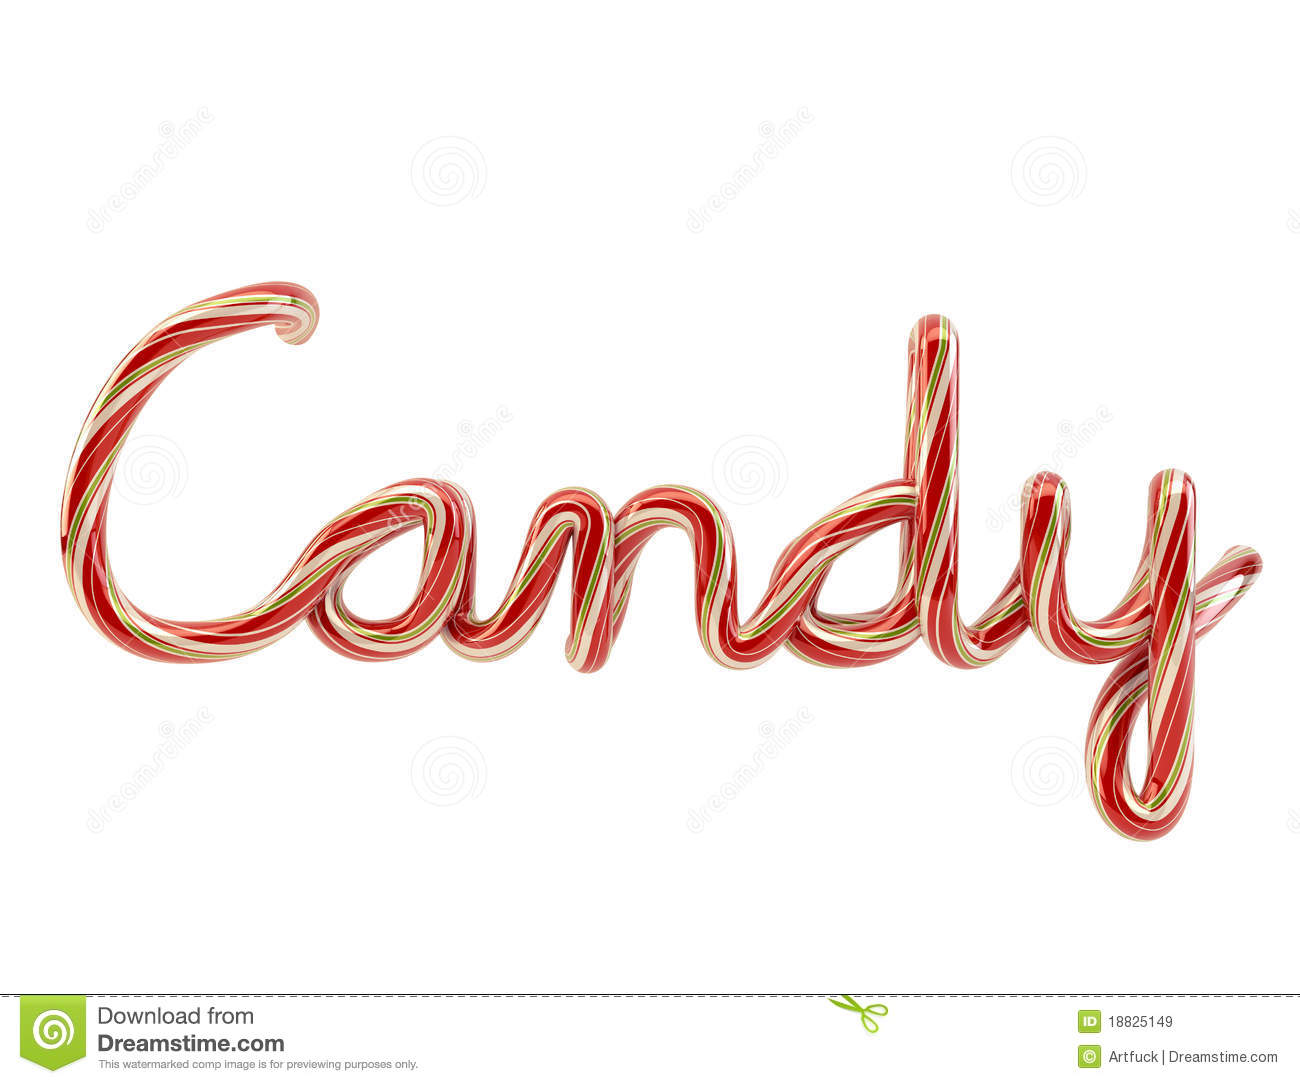 Candy font stock image  Image of lolipop, isolated, chocolate - 18825149